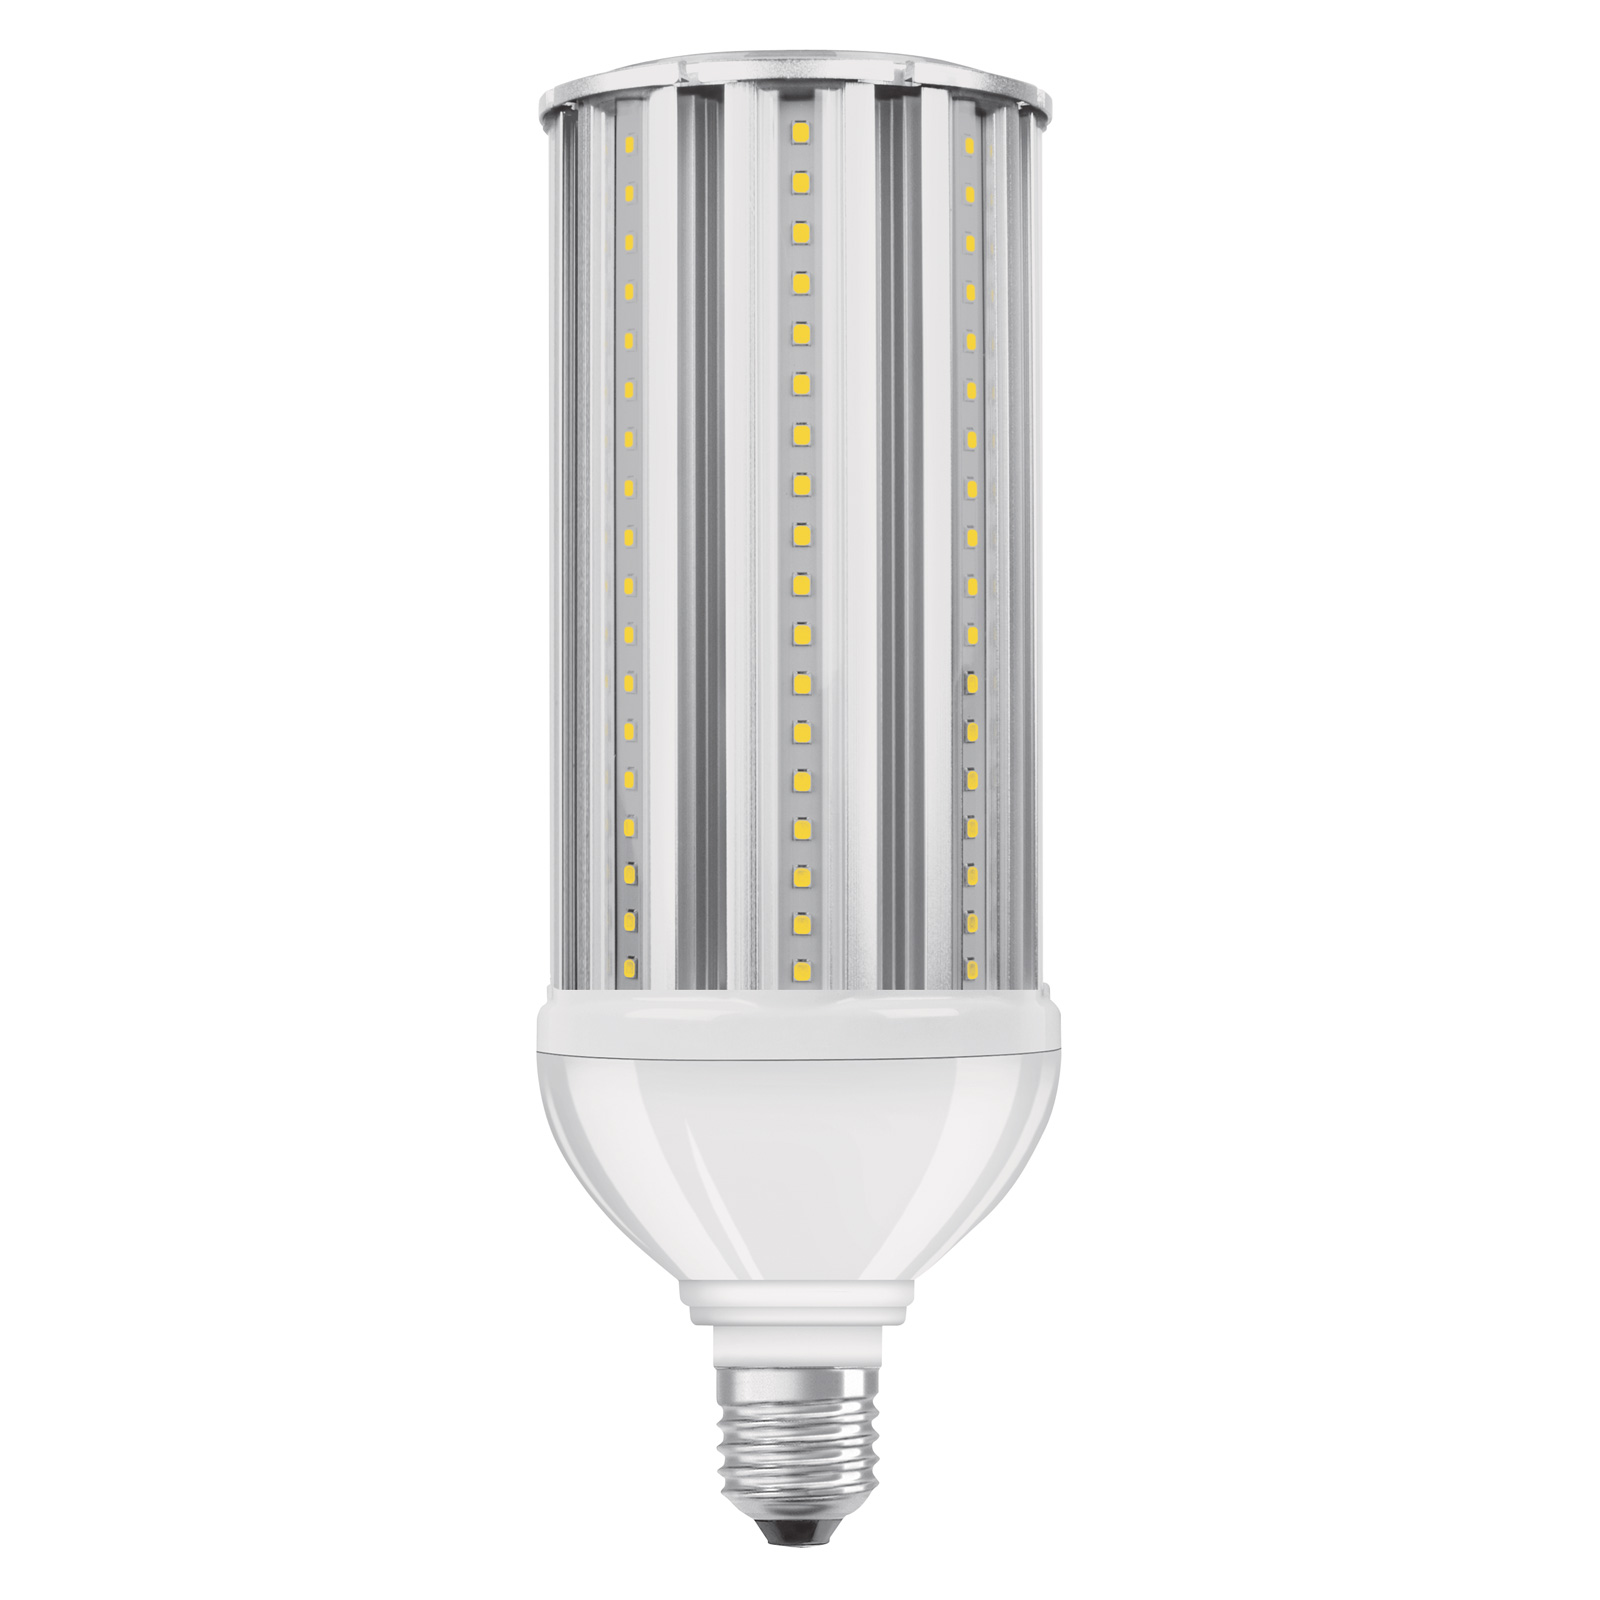 Osram parathom hql led lampe e27 54 watt 6000 lumen neutral white osram parathom hql led lampe e27 54 watt 6000 lumen neutral white 4000 kelvin led parisarafo Gallery